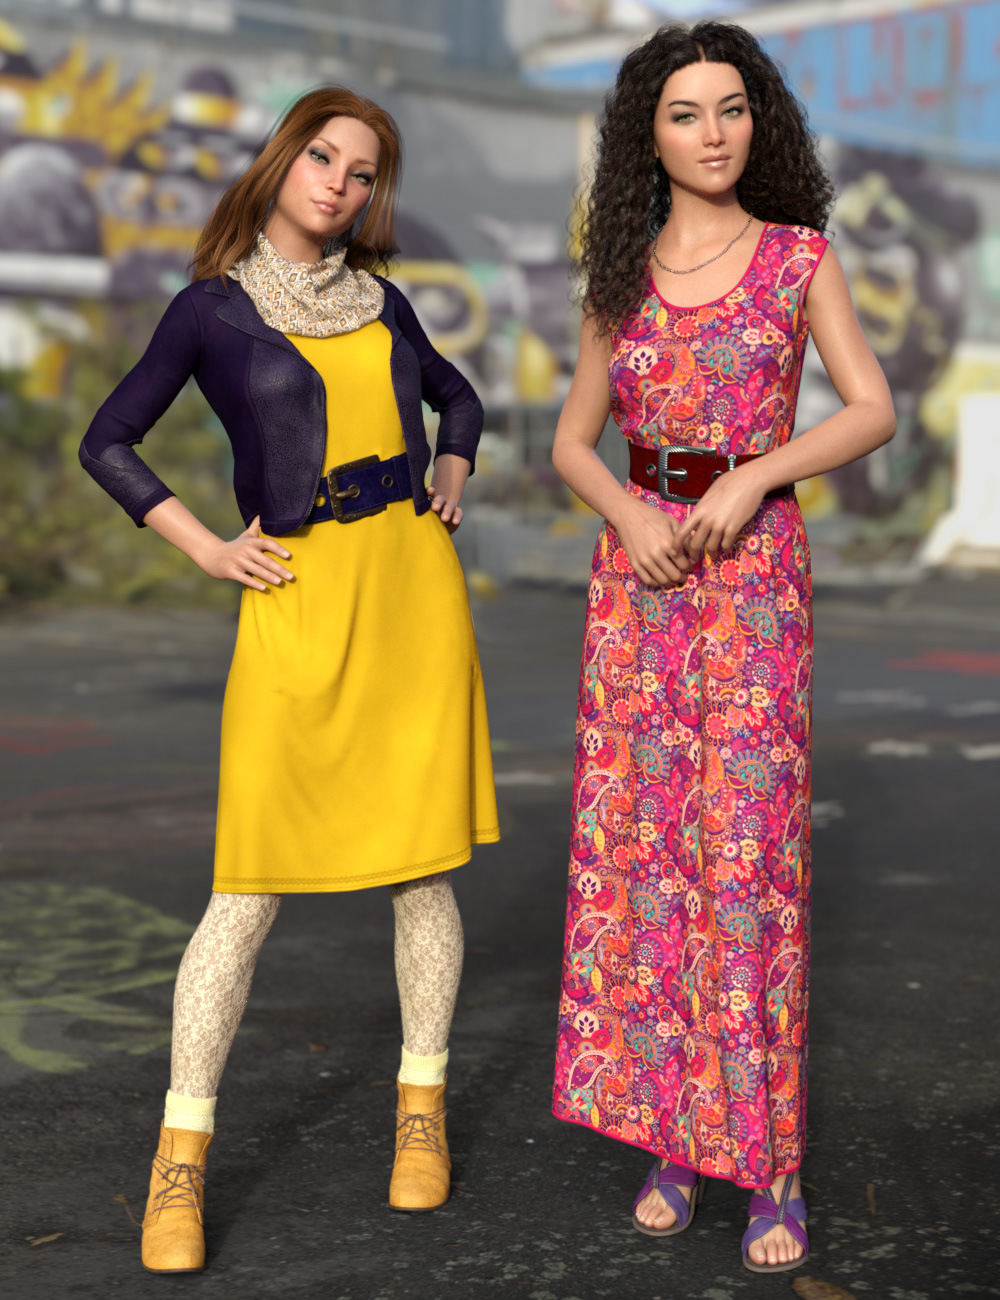 dForce All Seasons Outfit Texture Add-on by: esha, 3D Models by Daz 3D